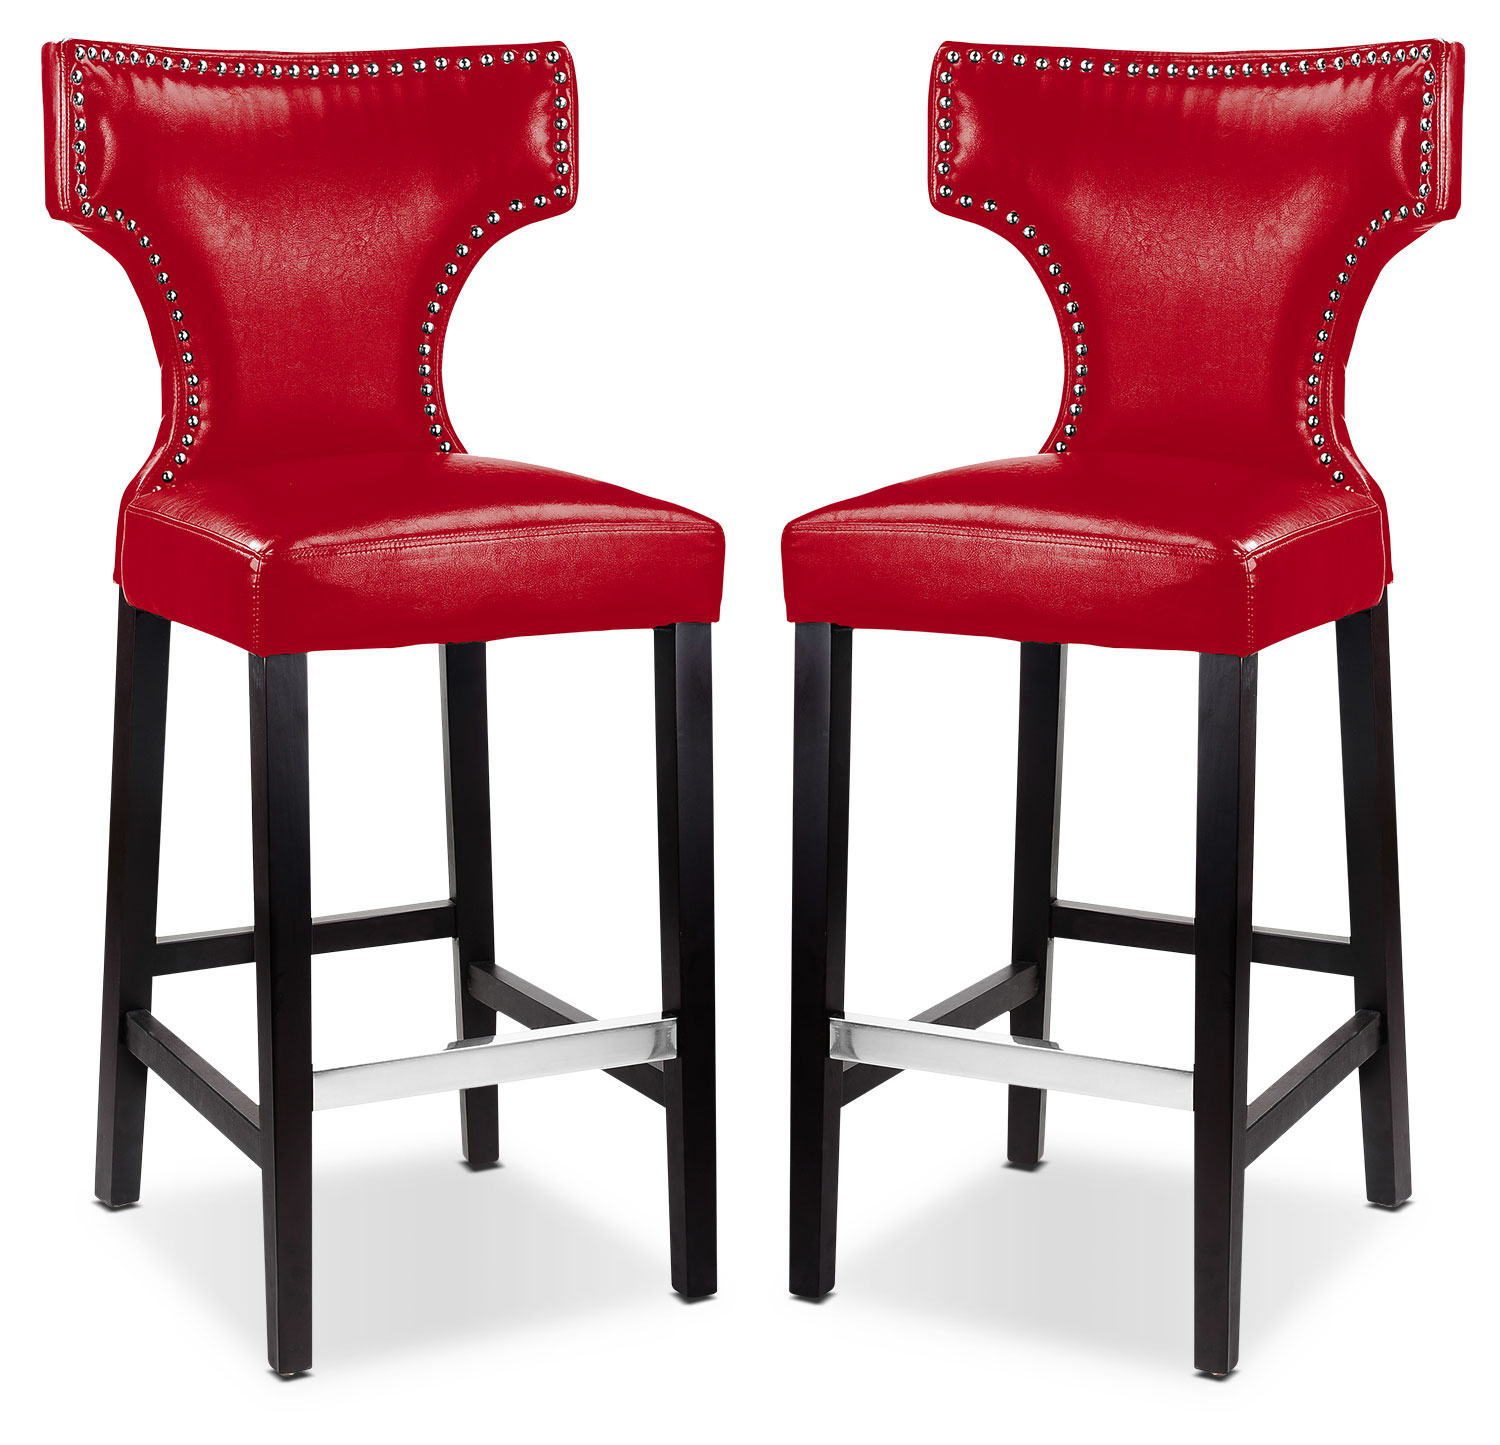 Kings Bar Stool with Metal Studs, Set of 2 – Red